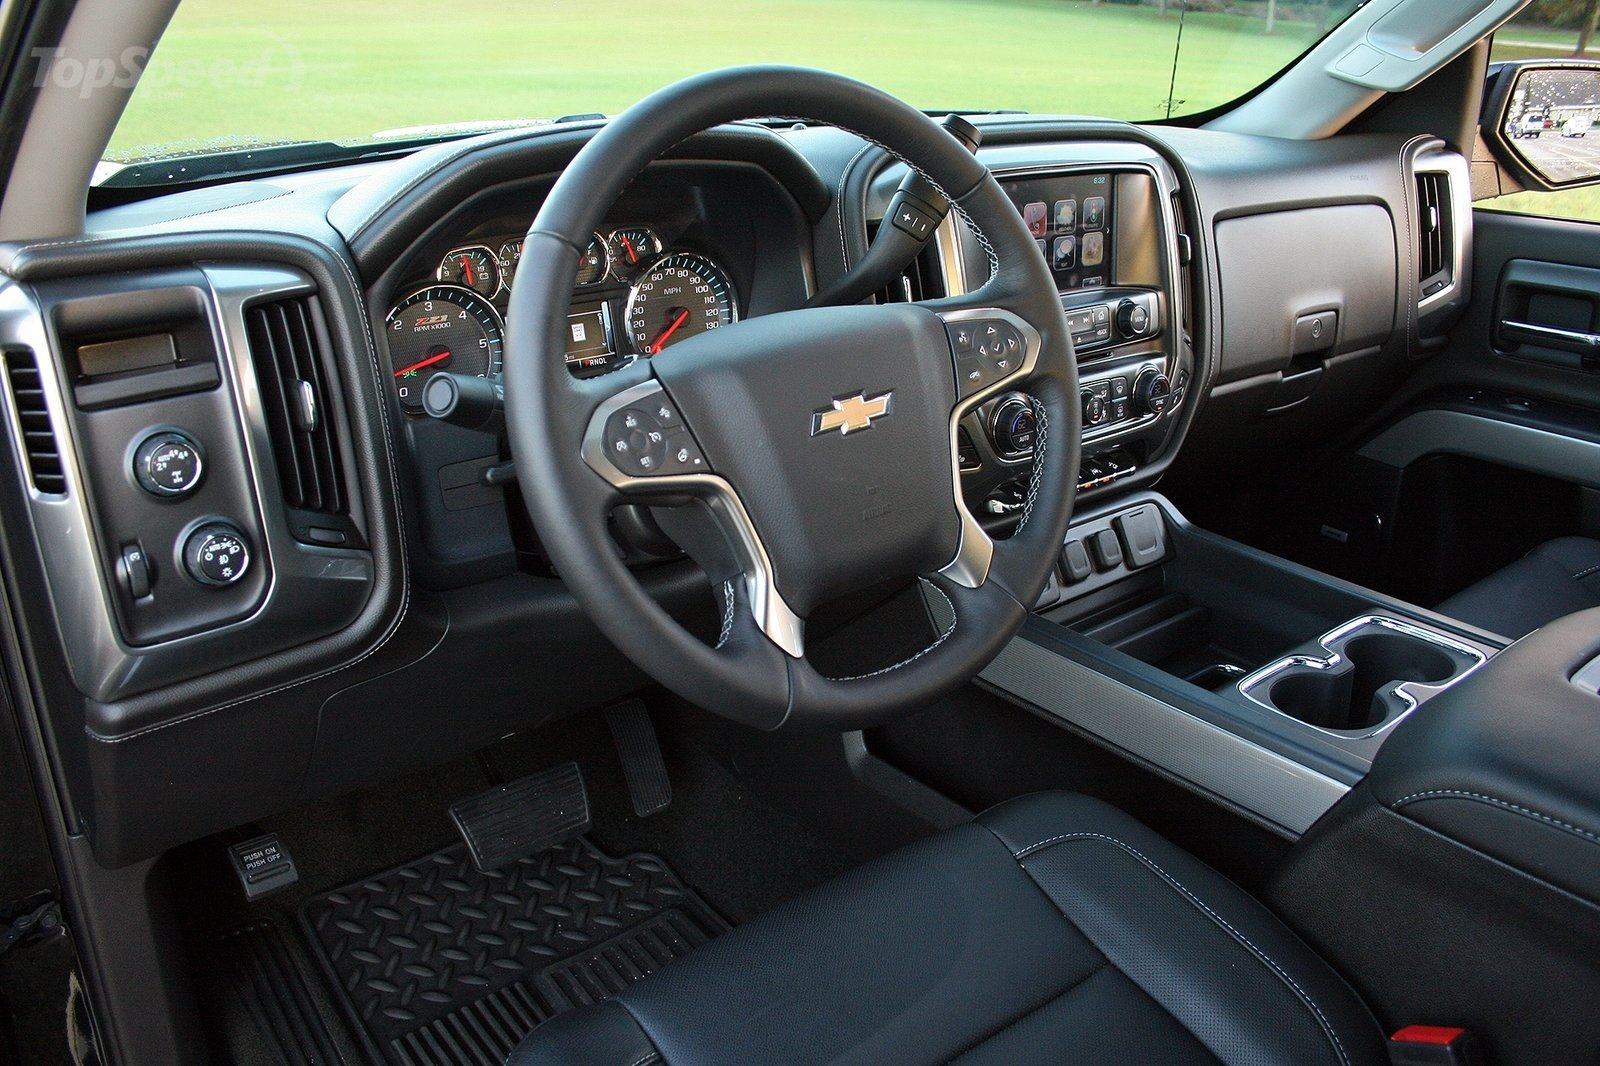 2019 Chevy Colorado Duramax | 2019 - 2020 GM Car Models